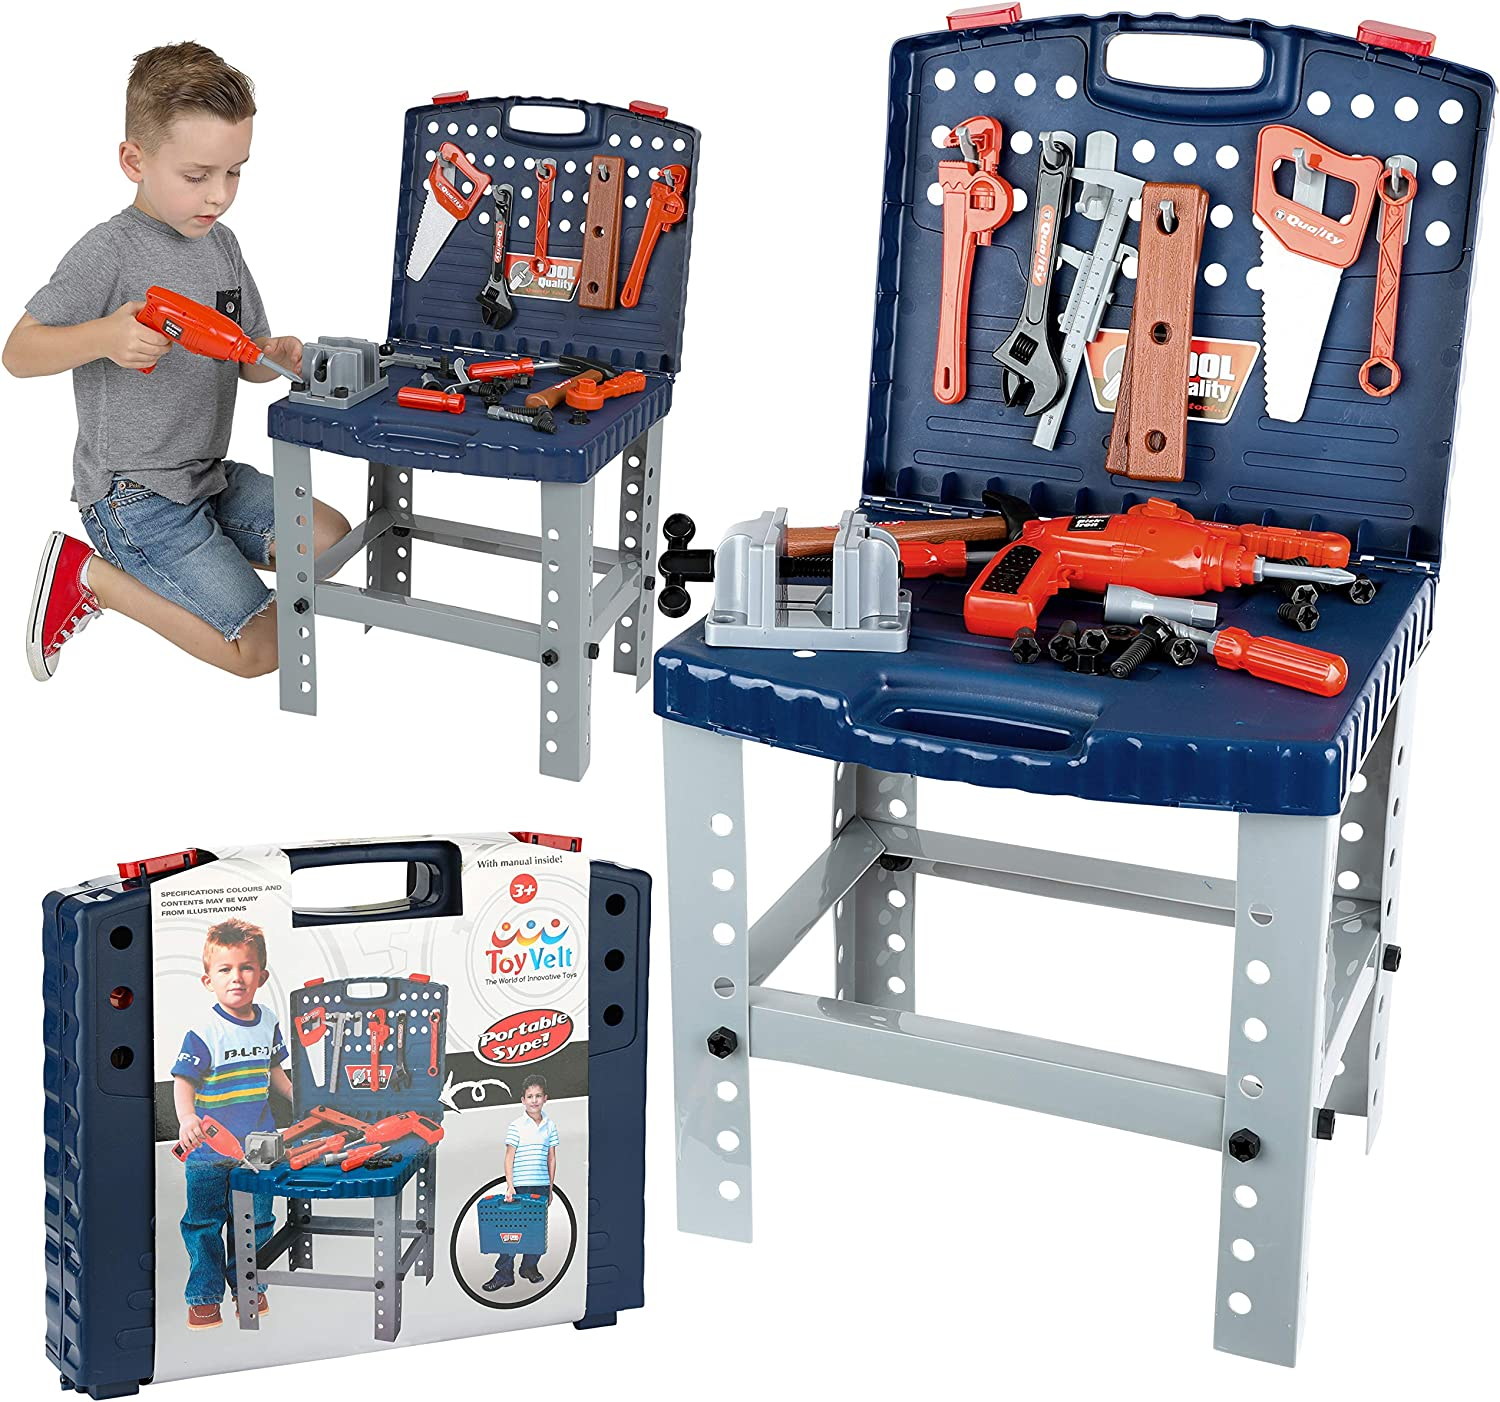 68 Piece Workbench W Realistic Tools & Electric Drill For Workshop Tool Bench